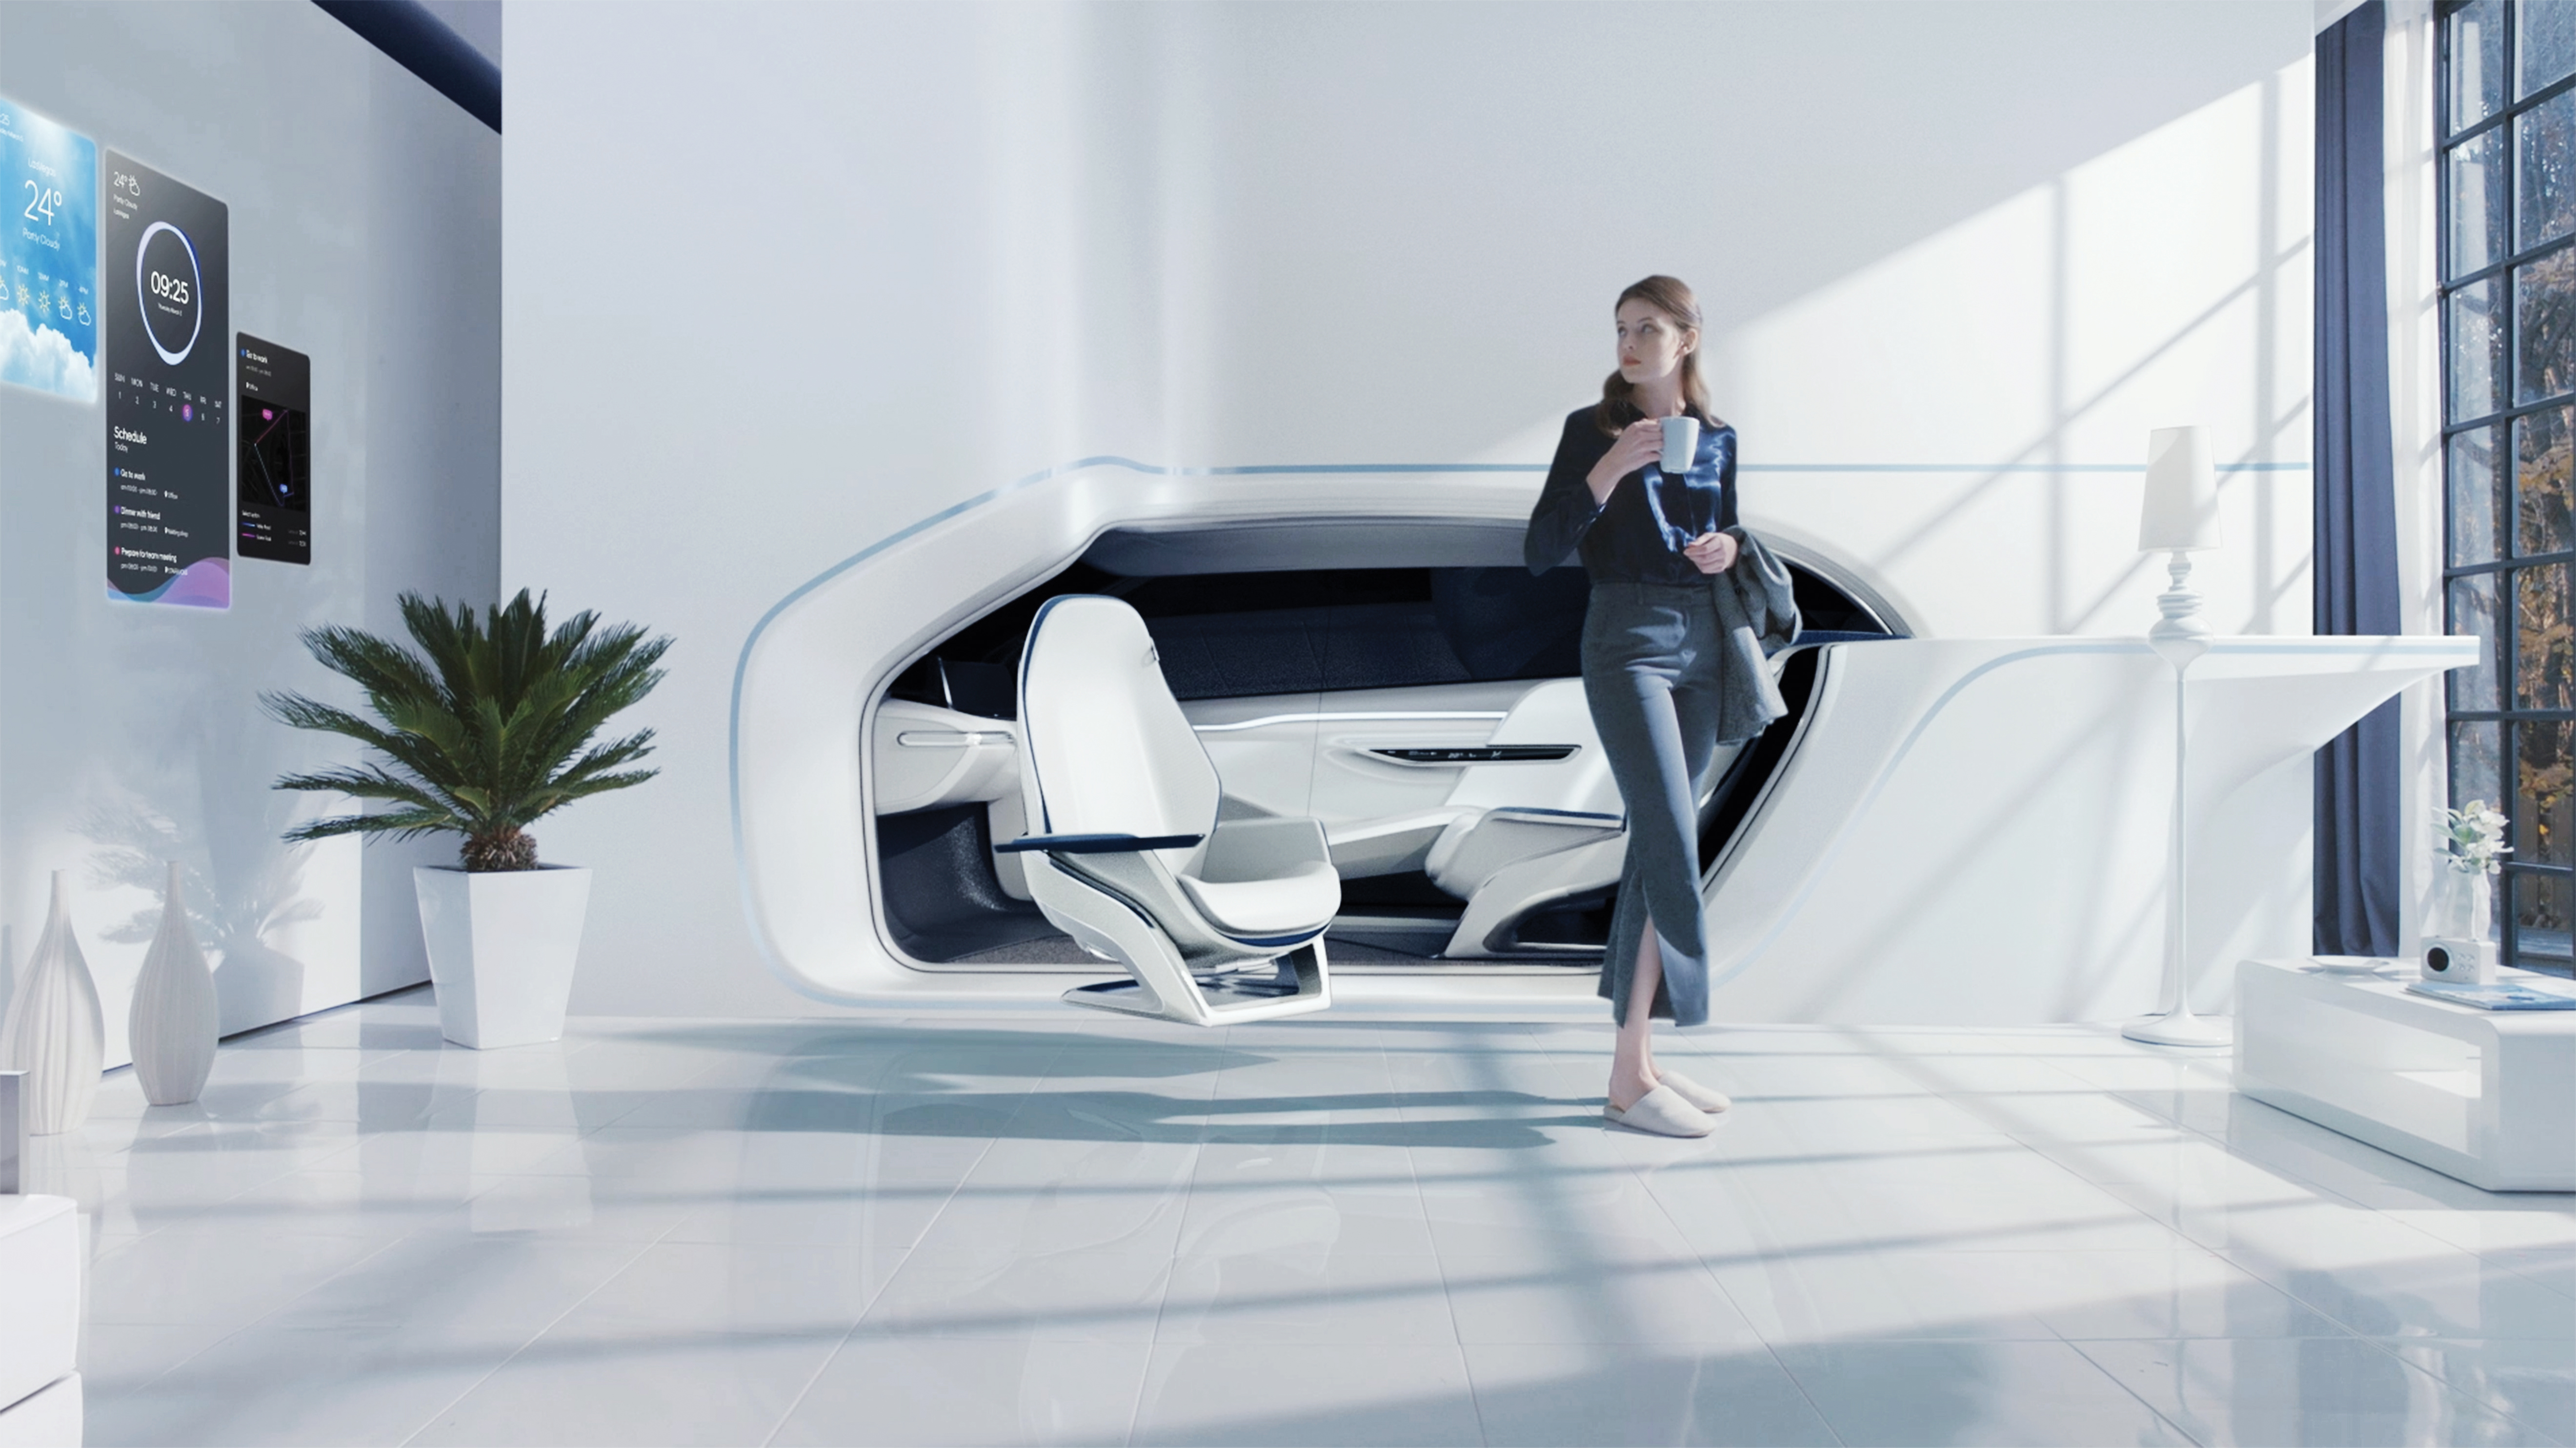 Hyundai envisions a future where your smart home is your driverless car   and vice versa. Hyundai envisions a future where your smart home is your